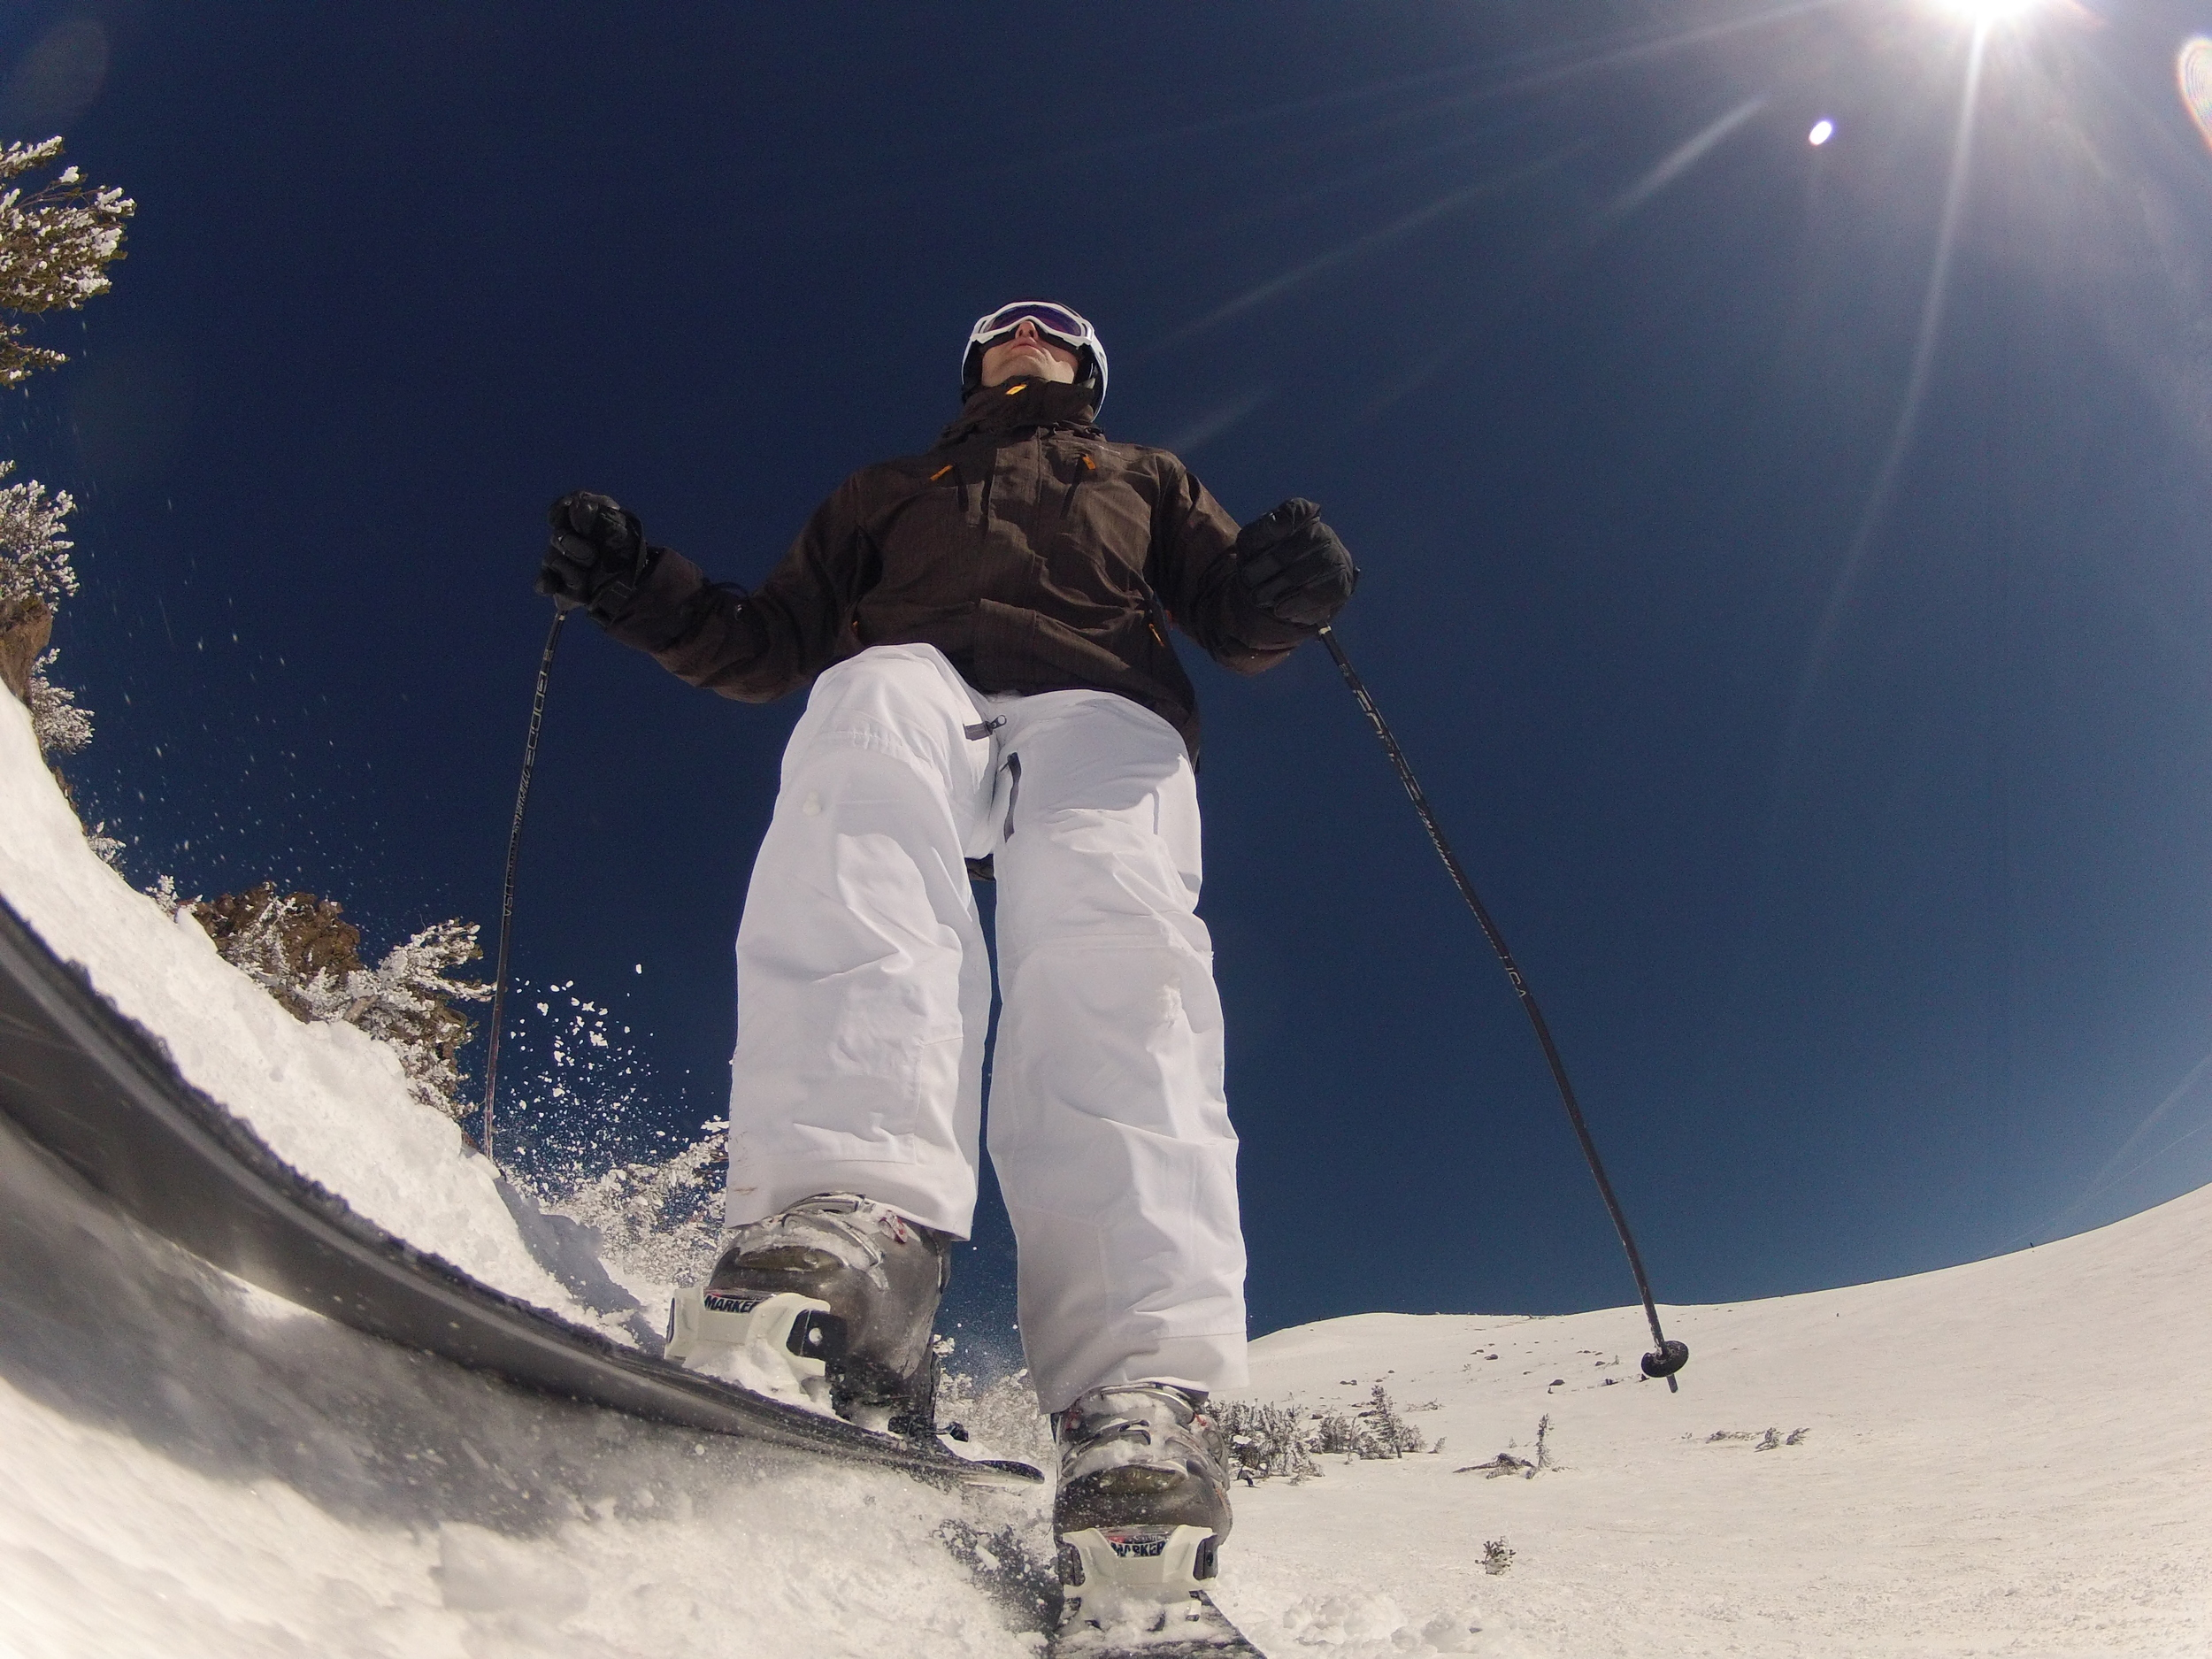 At Mammoth Mountain on Friday.